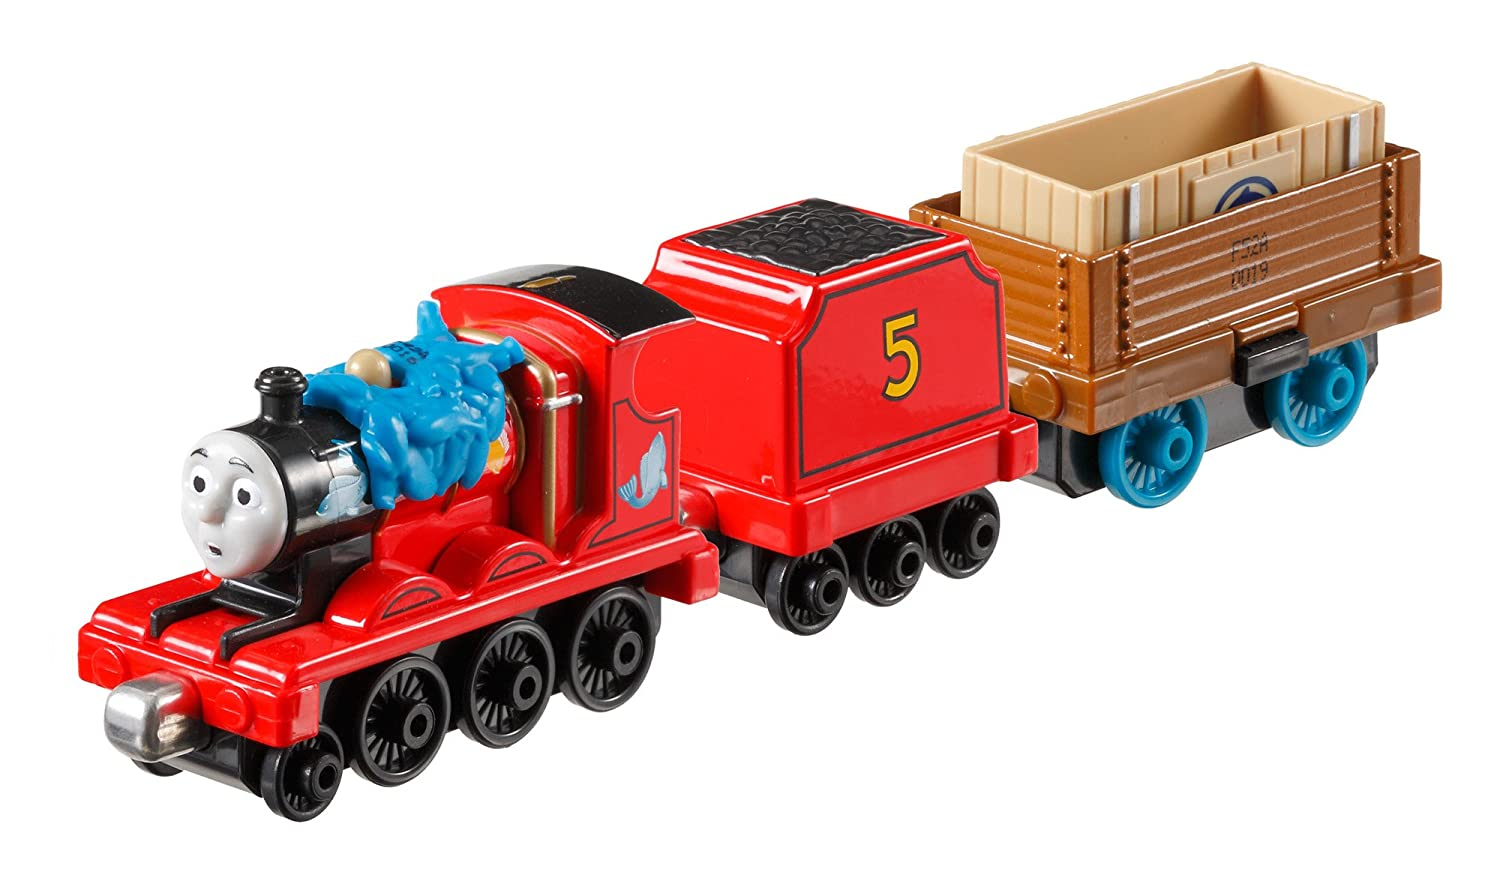 Fisher price thomas amp friends trackmaster treasure chase set new - Amazon Com Fisher Price Thomas The Train Take N Play James And The Flying Kipper Toys Games